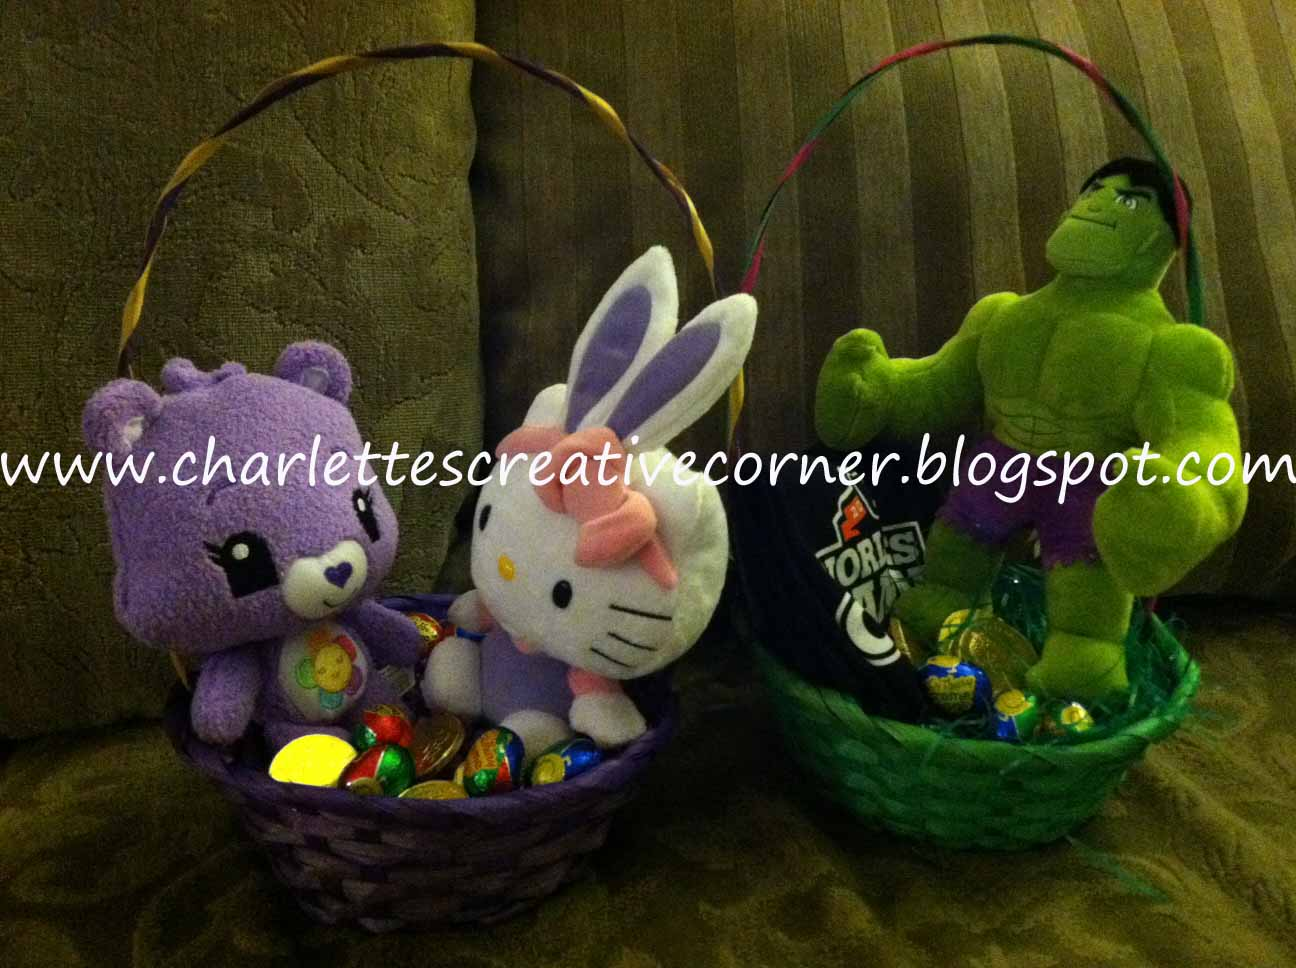 Charlettes creative corner easter baskets weve already had a couple of easter egg hunts for the kids and today we will be giving my niece and nephew their easter egg baskets negle Images